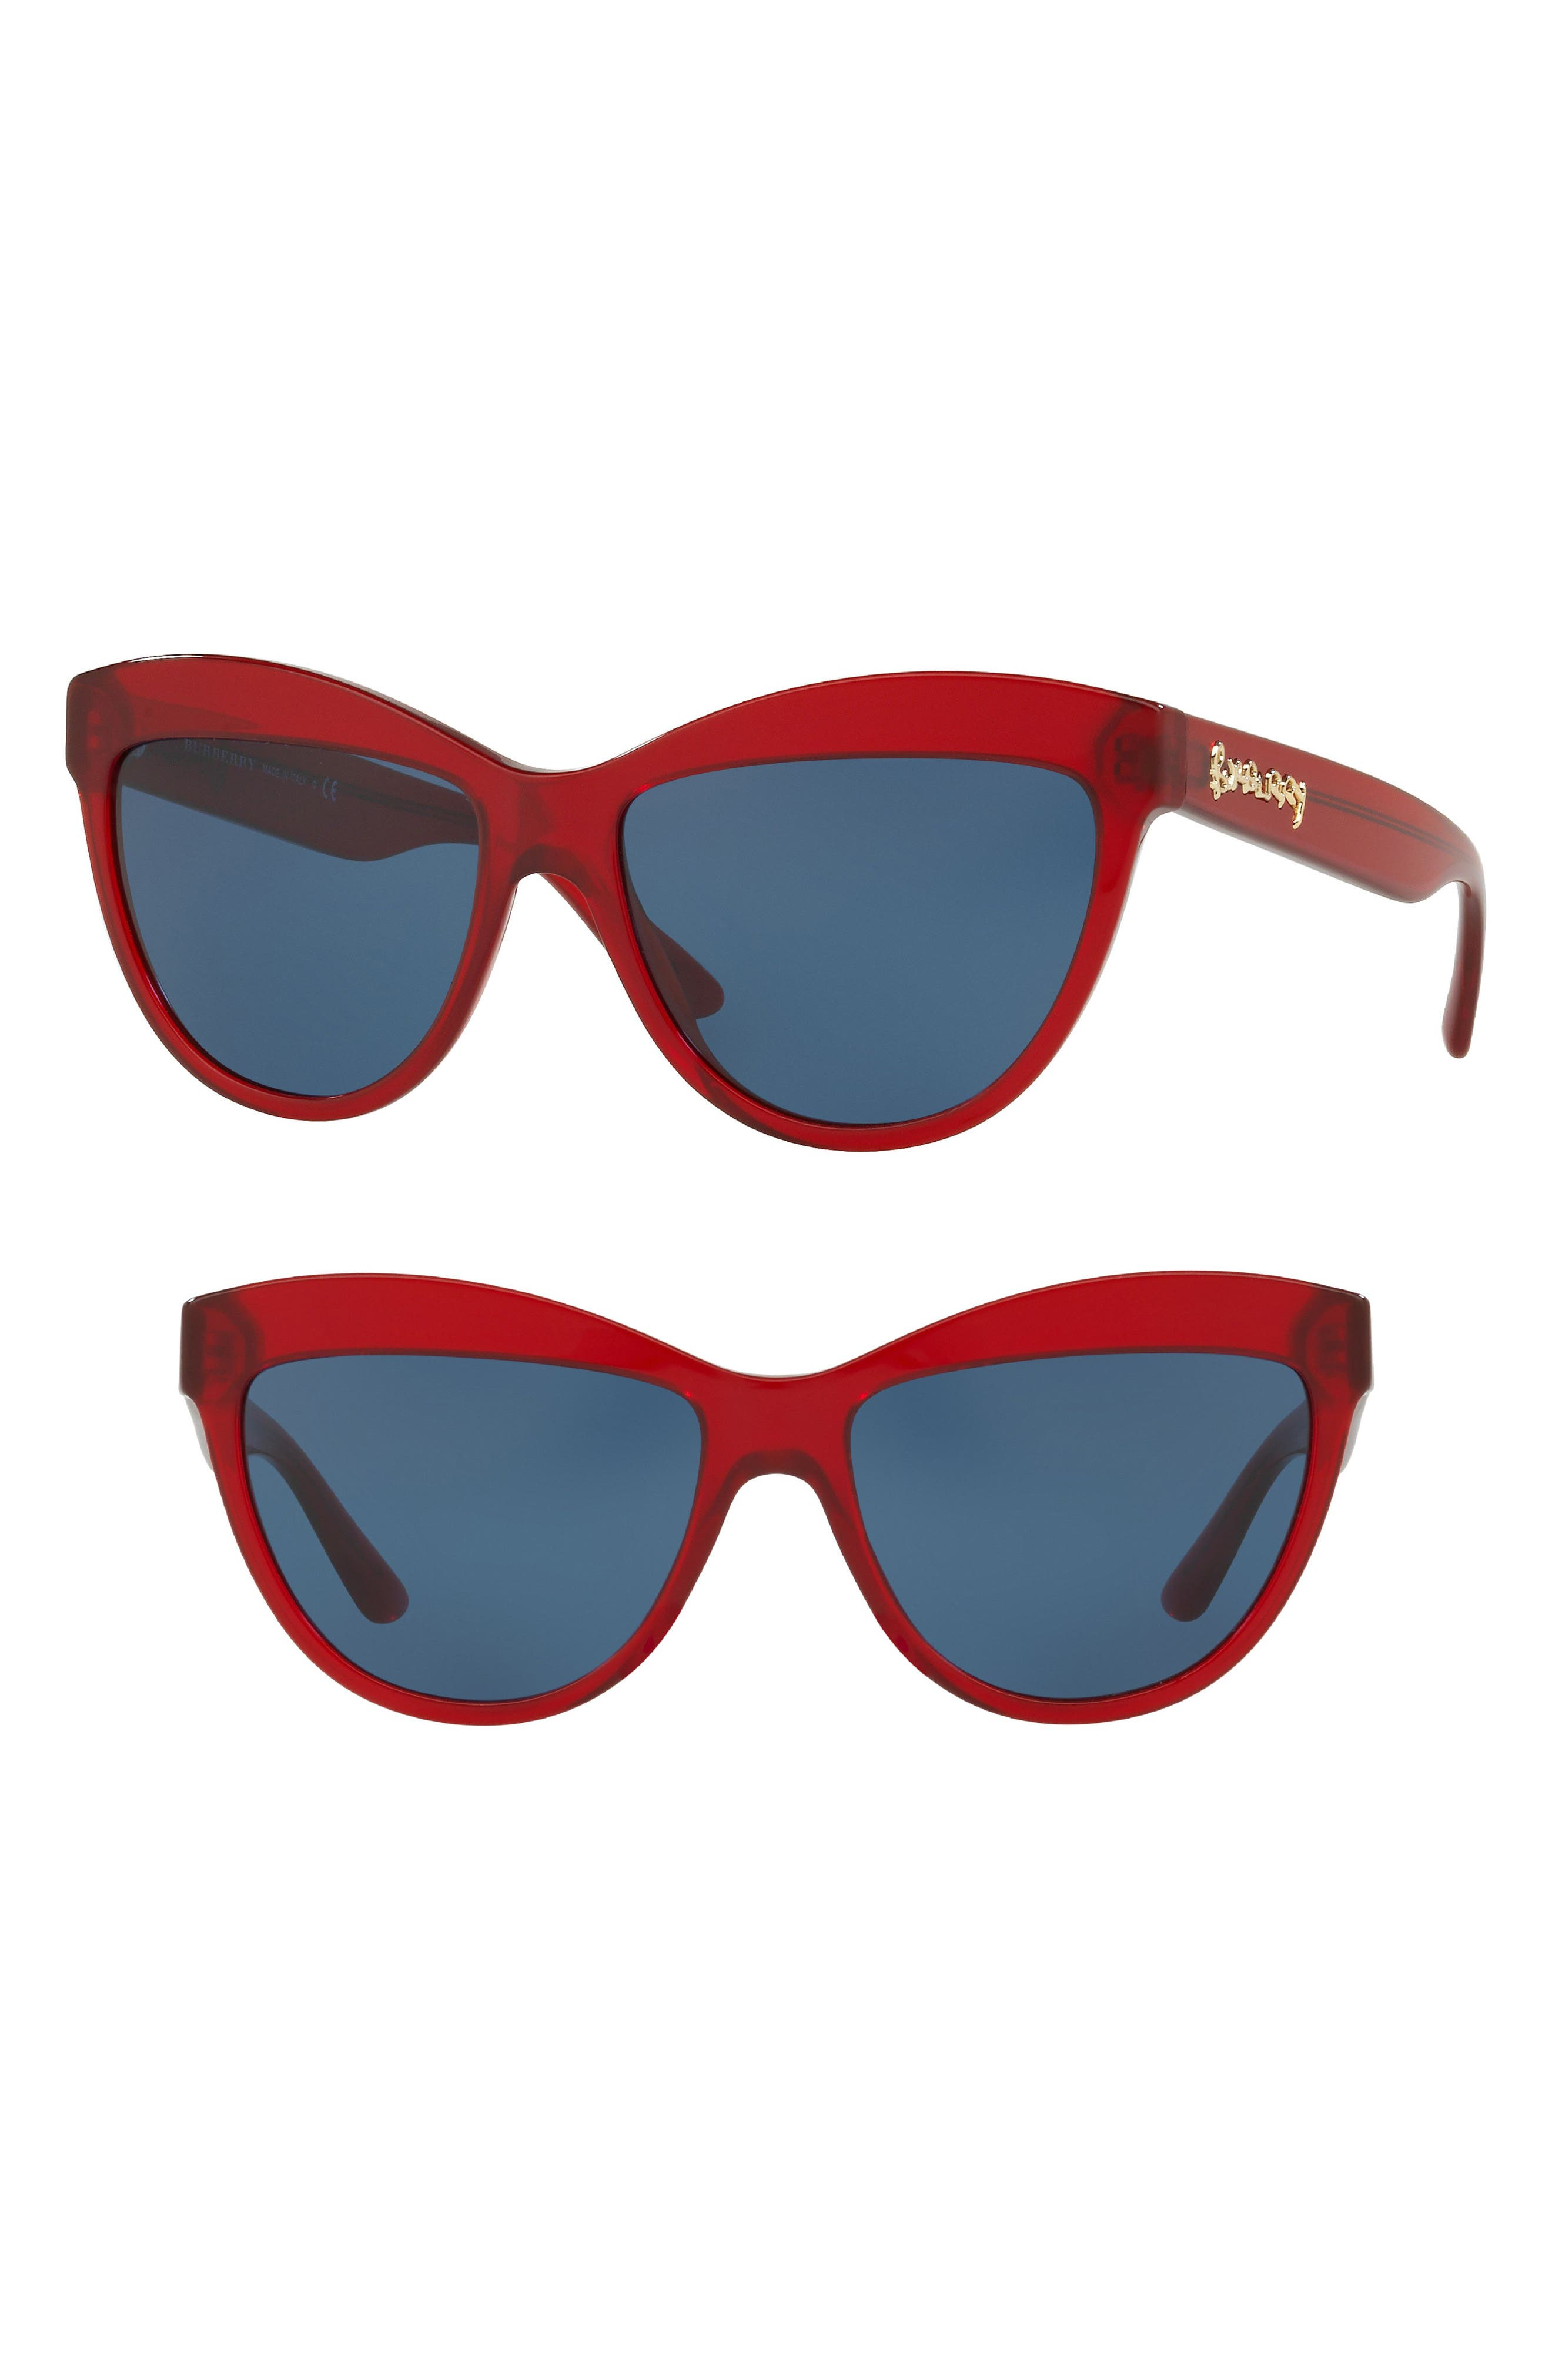 Acoustic 56mm Cat Eye Sunglasses,                         Main,                         color, Burgundy Solid